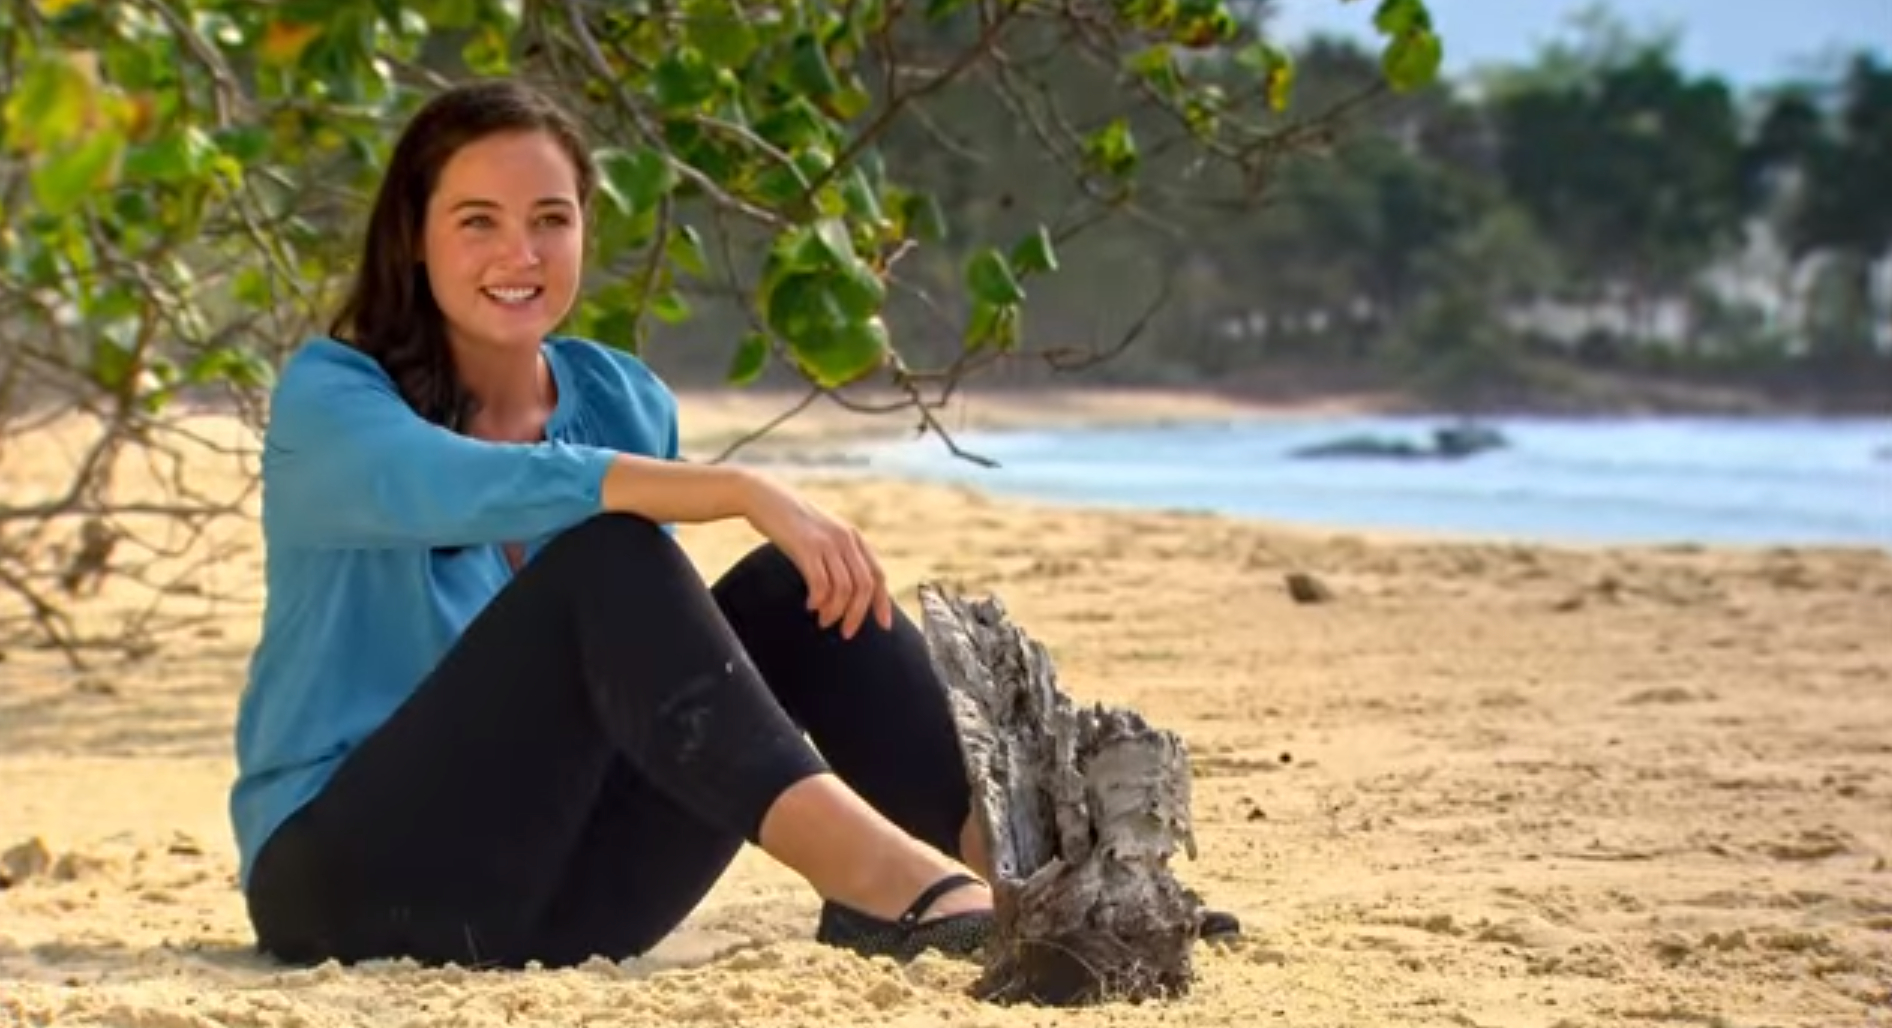 Liz revealed as Survivor: Kaoh Rong contestant